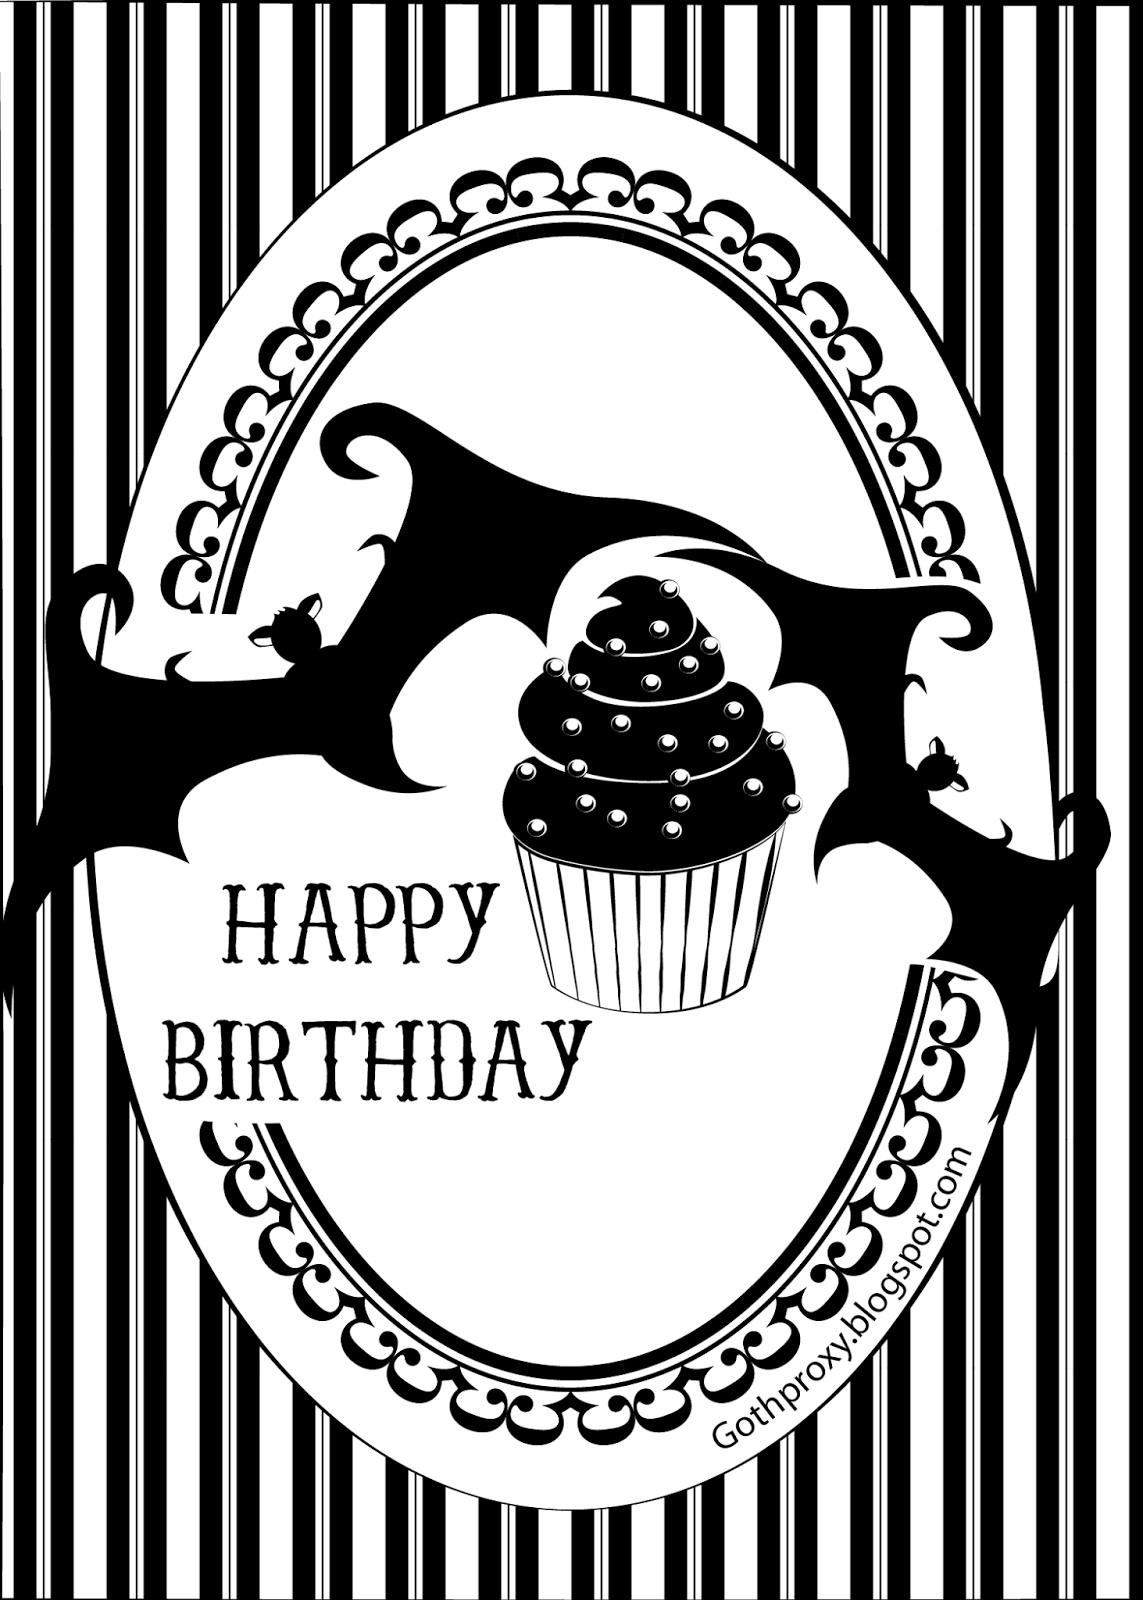 Goth proxy its my birthday today a birthday card that you can give to who ever youd like on their birthday feel free to print it out and give it to people bookmarktalkfo Gallery